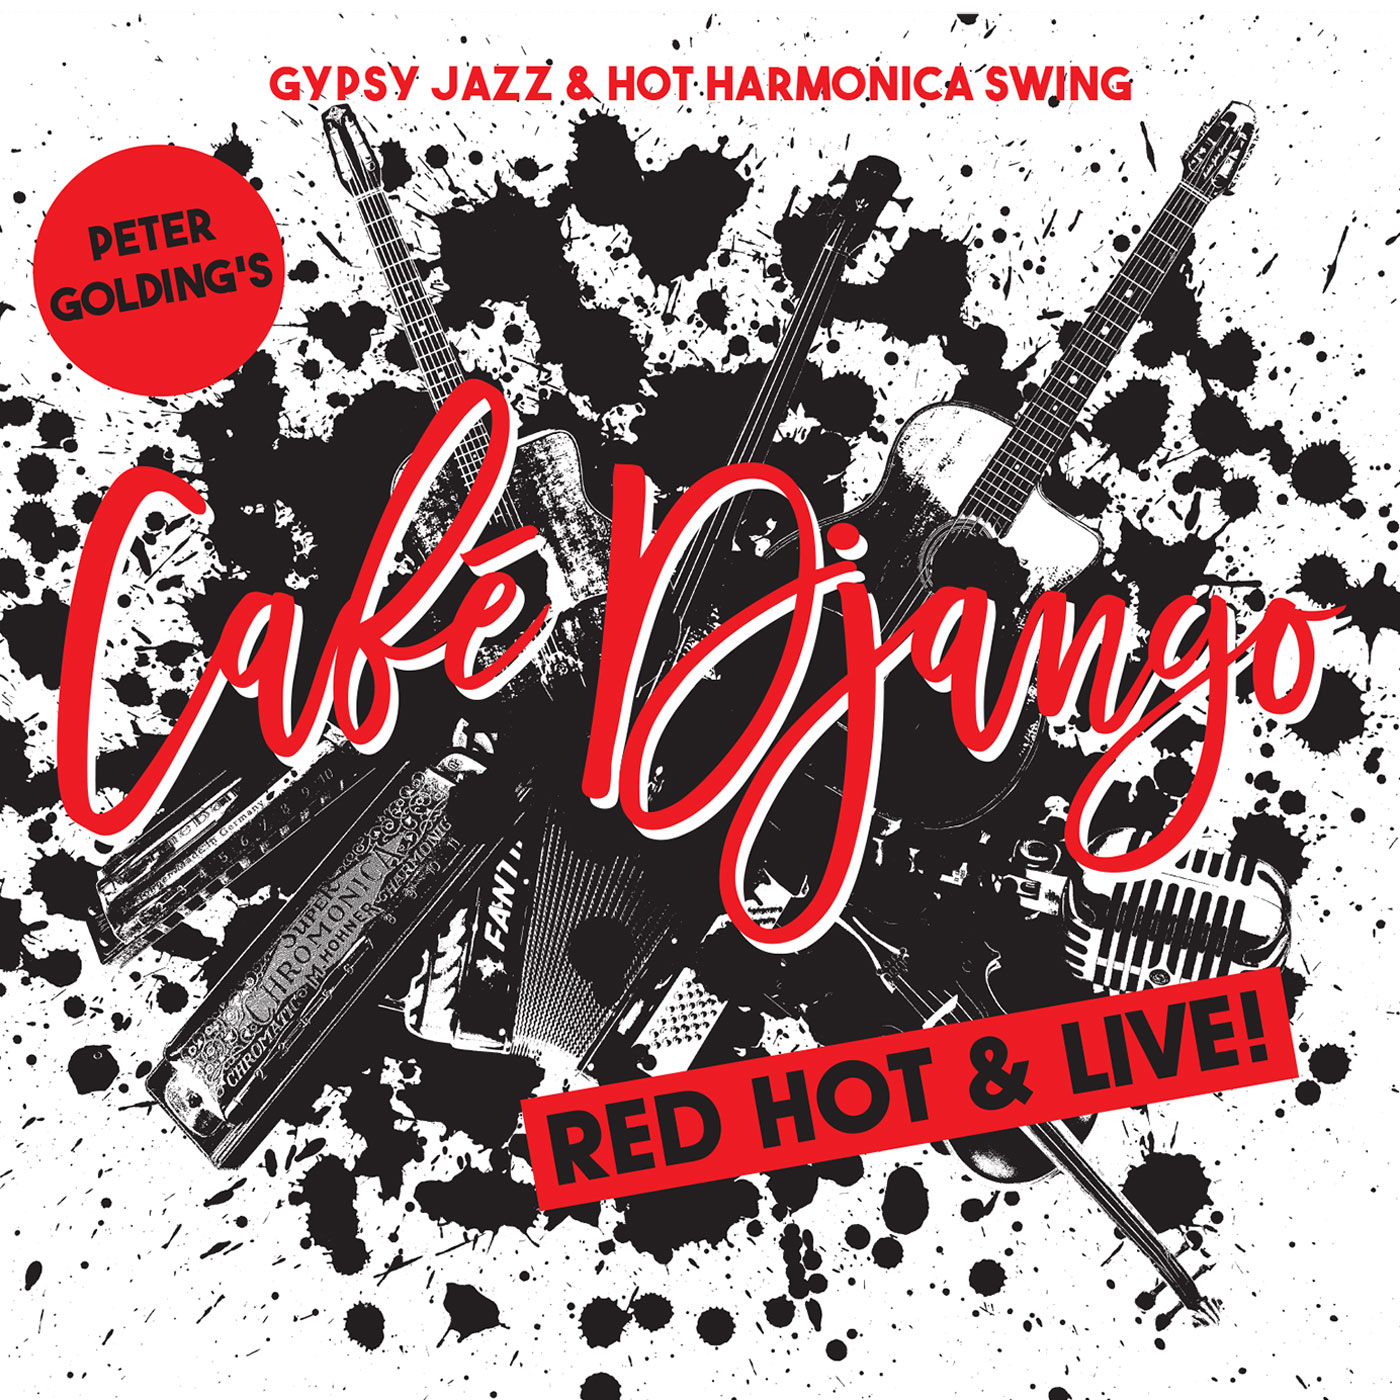 red hot & live CD cover